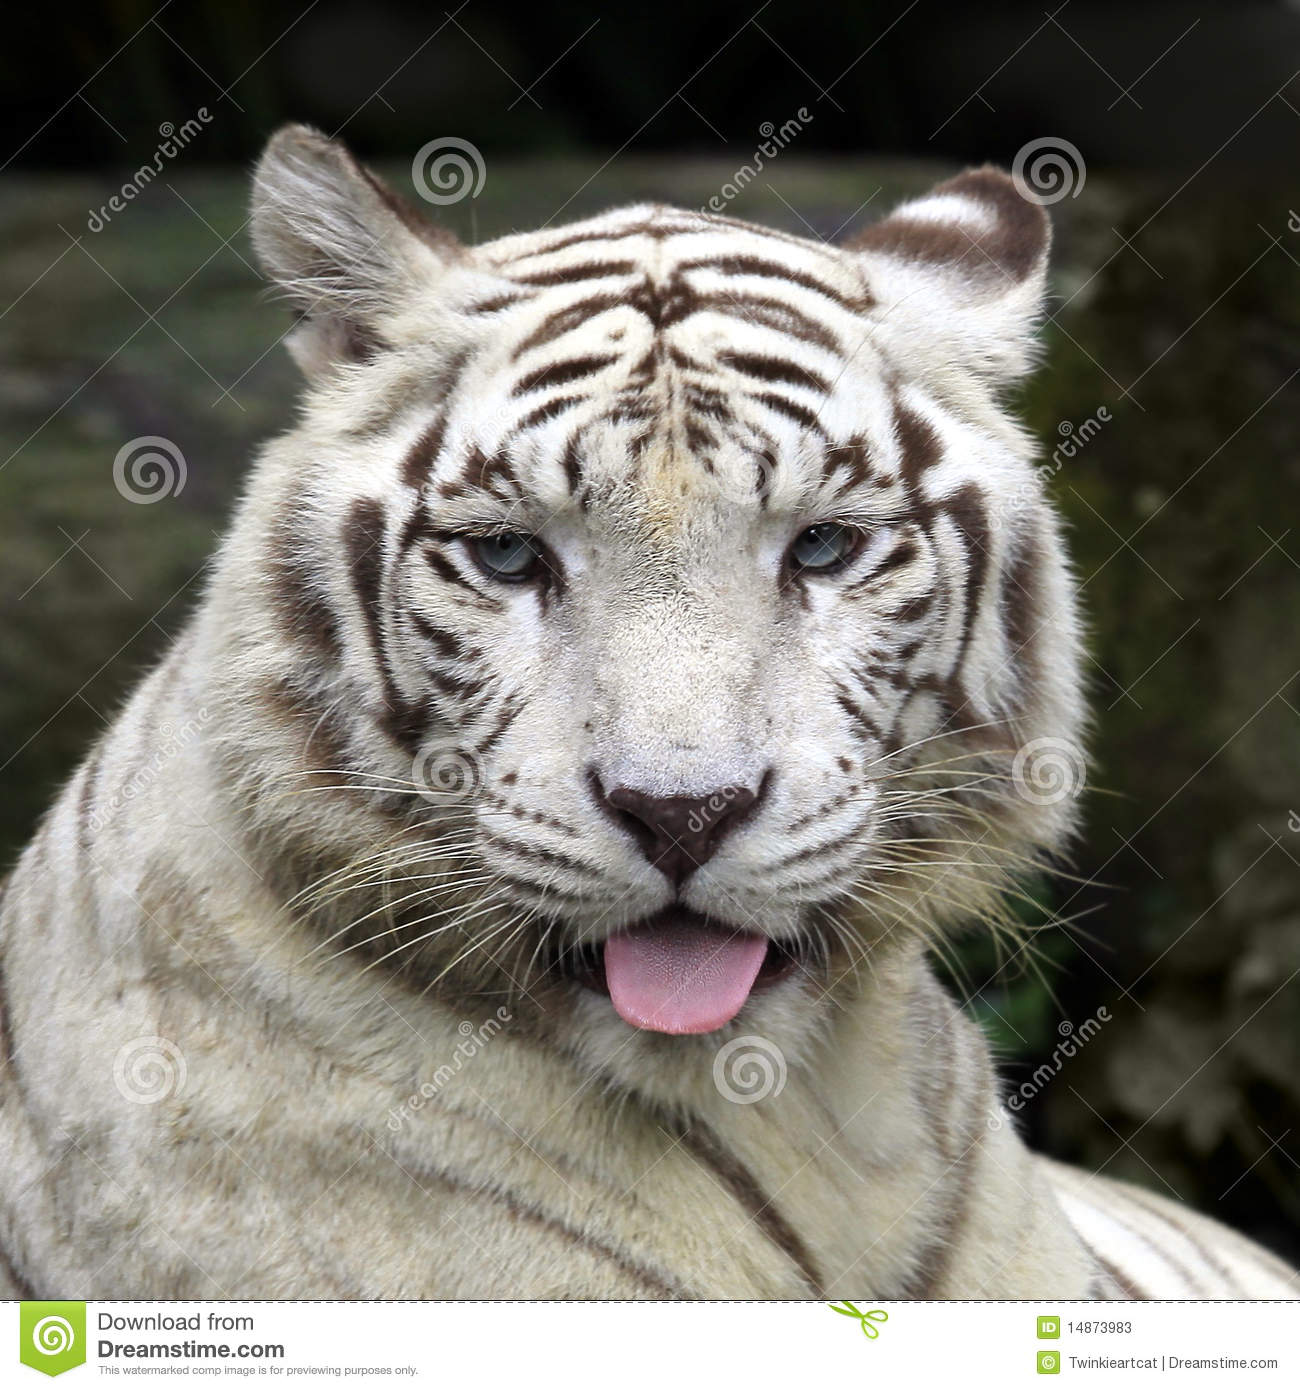 White Tiger Smiling Stock Photos - Image: 14873983